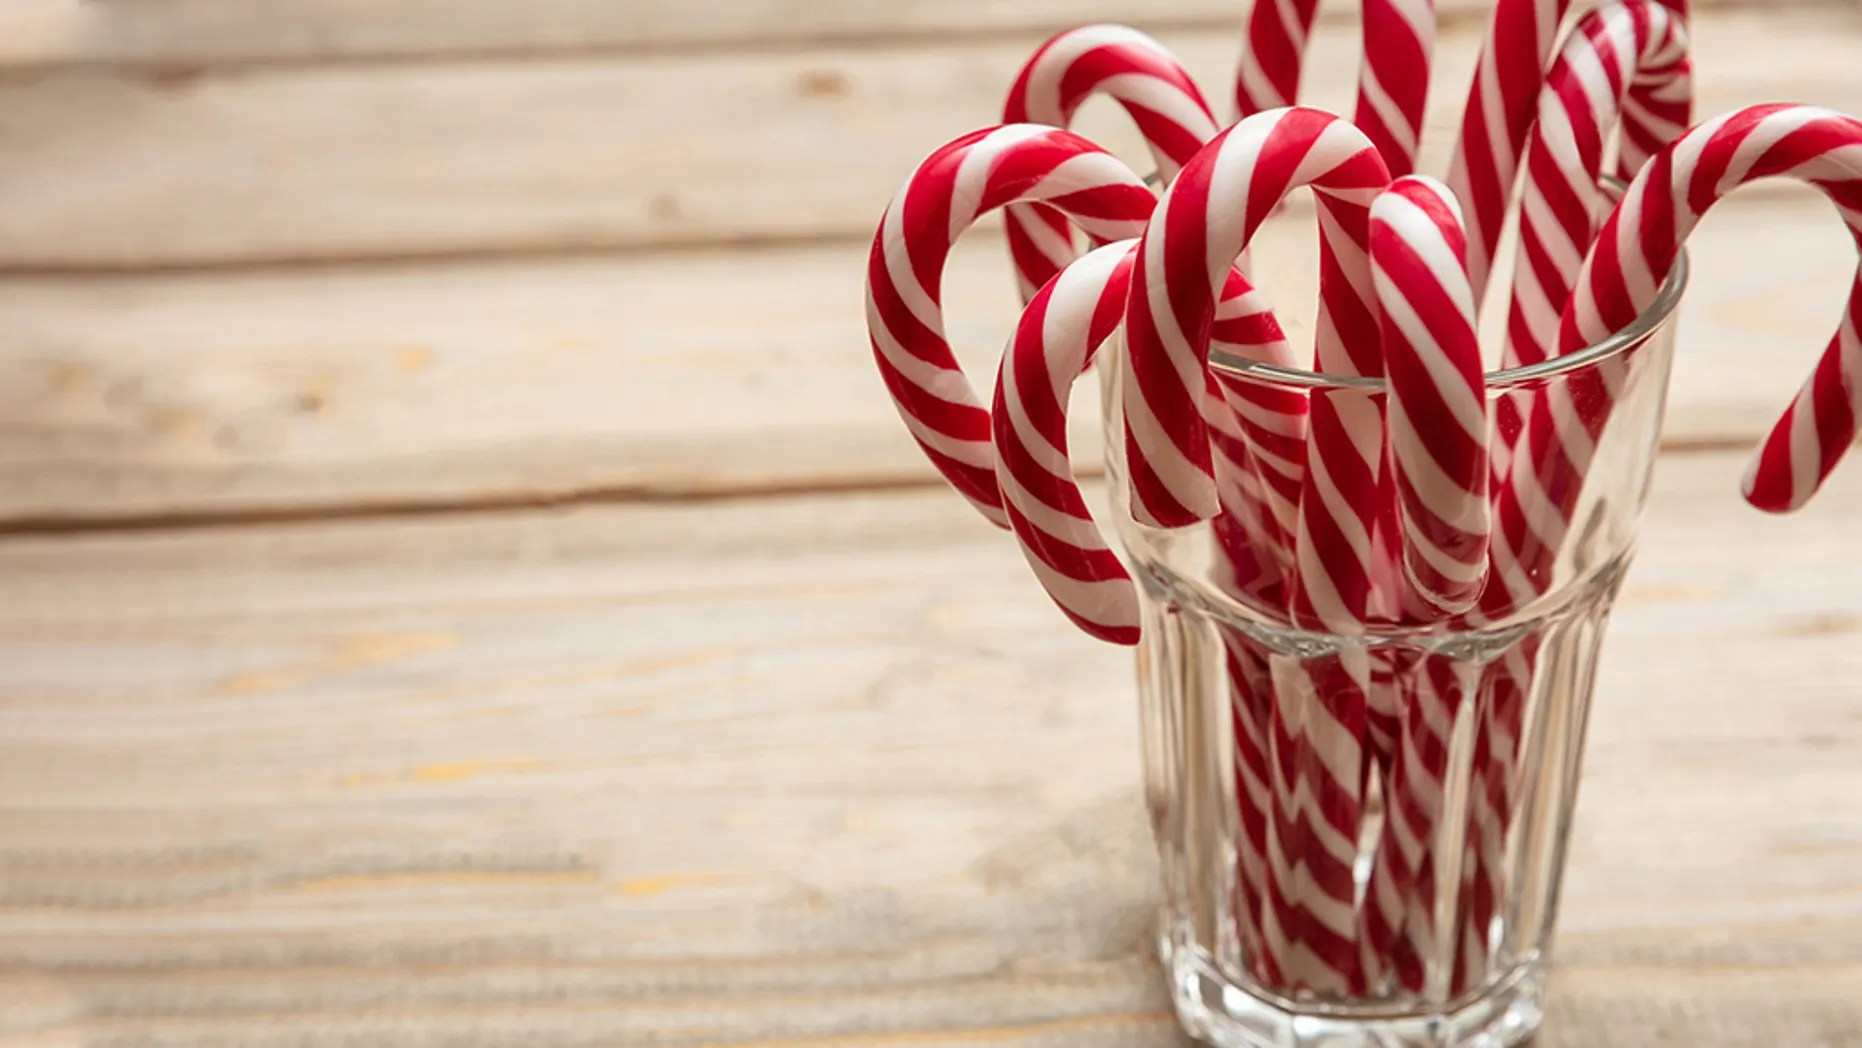 Candy canes were reportedly banned as a classroom decoration by a Nebraska principal.